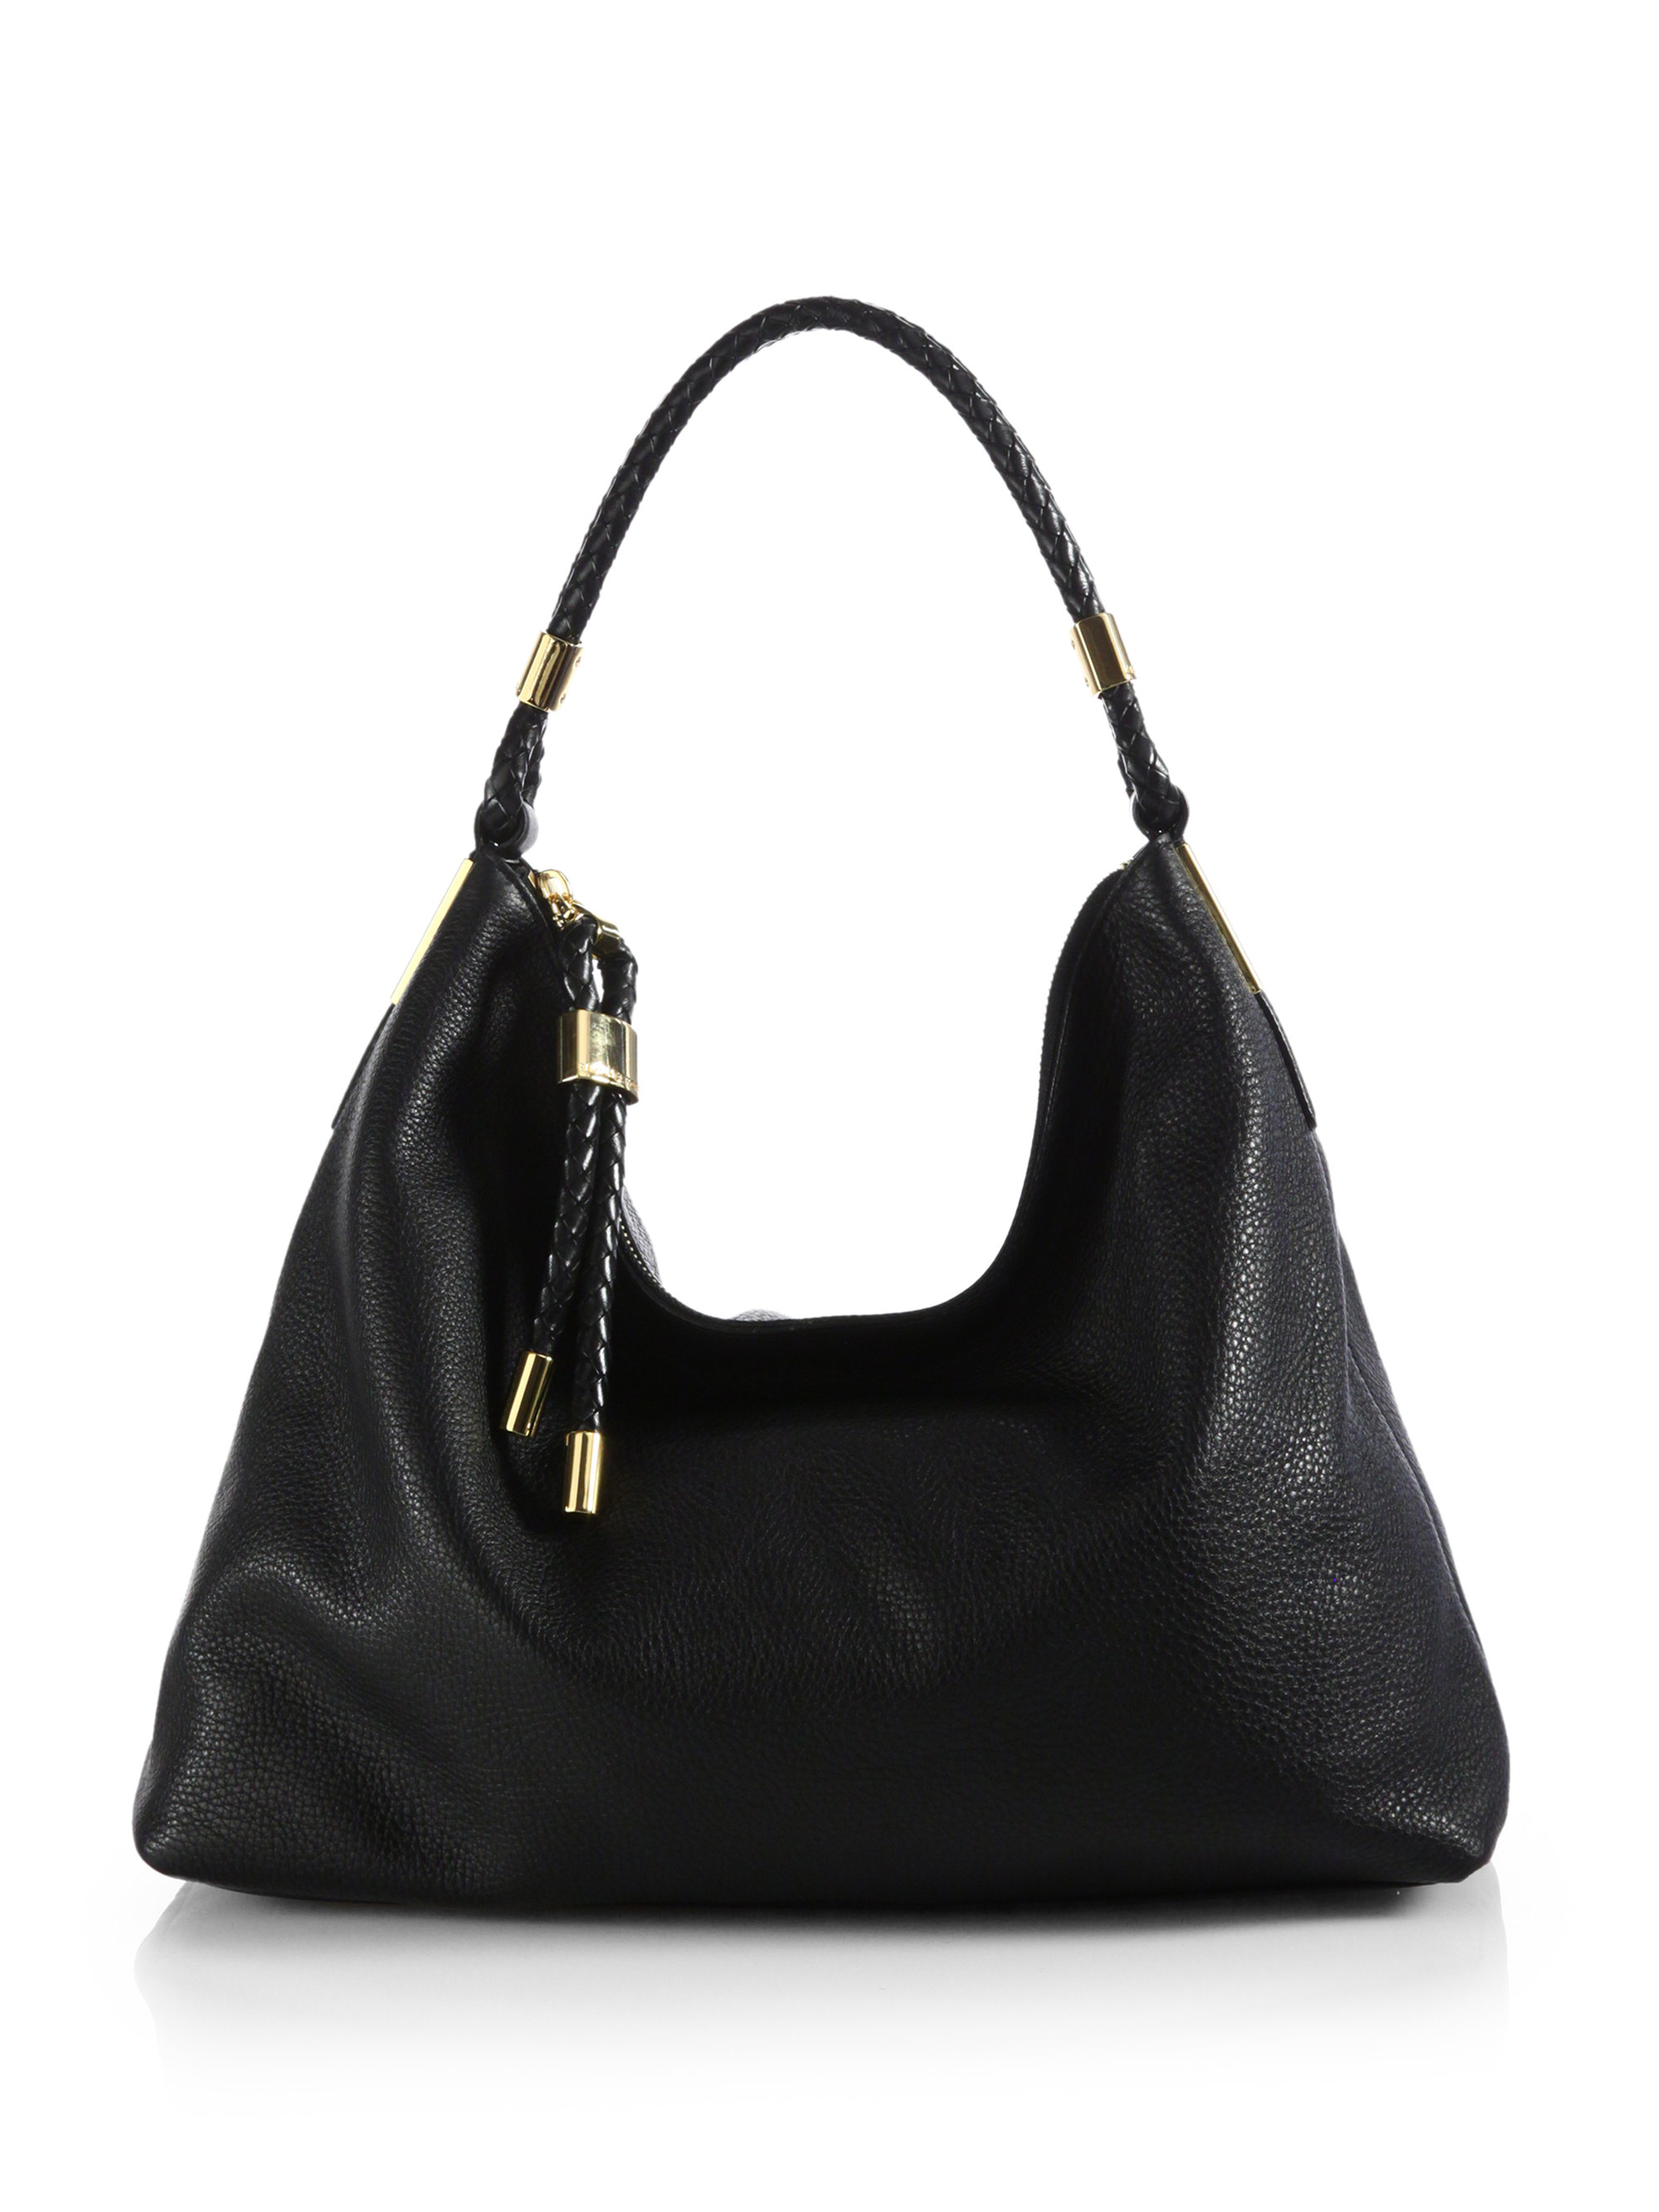 michael kors skorpios medium hobo bag in black lyst. Black Bedroom Furniture Sets. Home Design Ideas